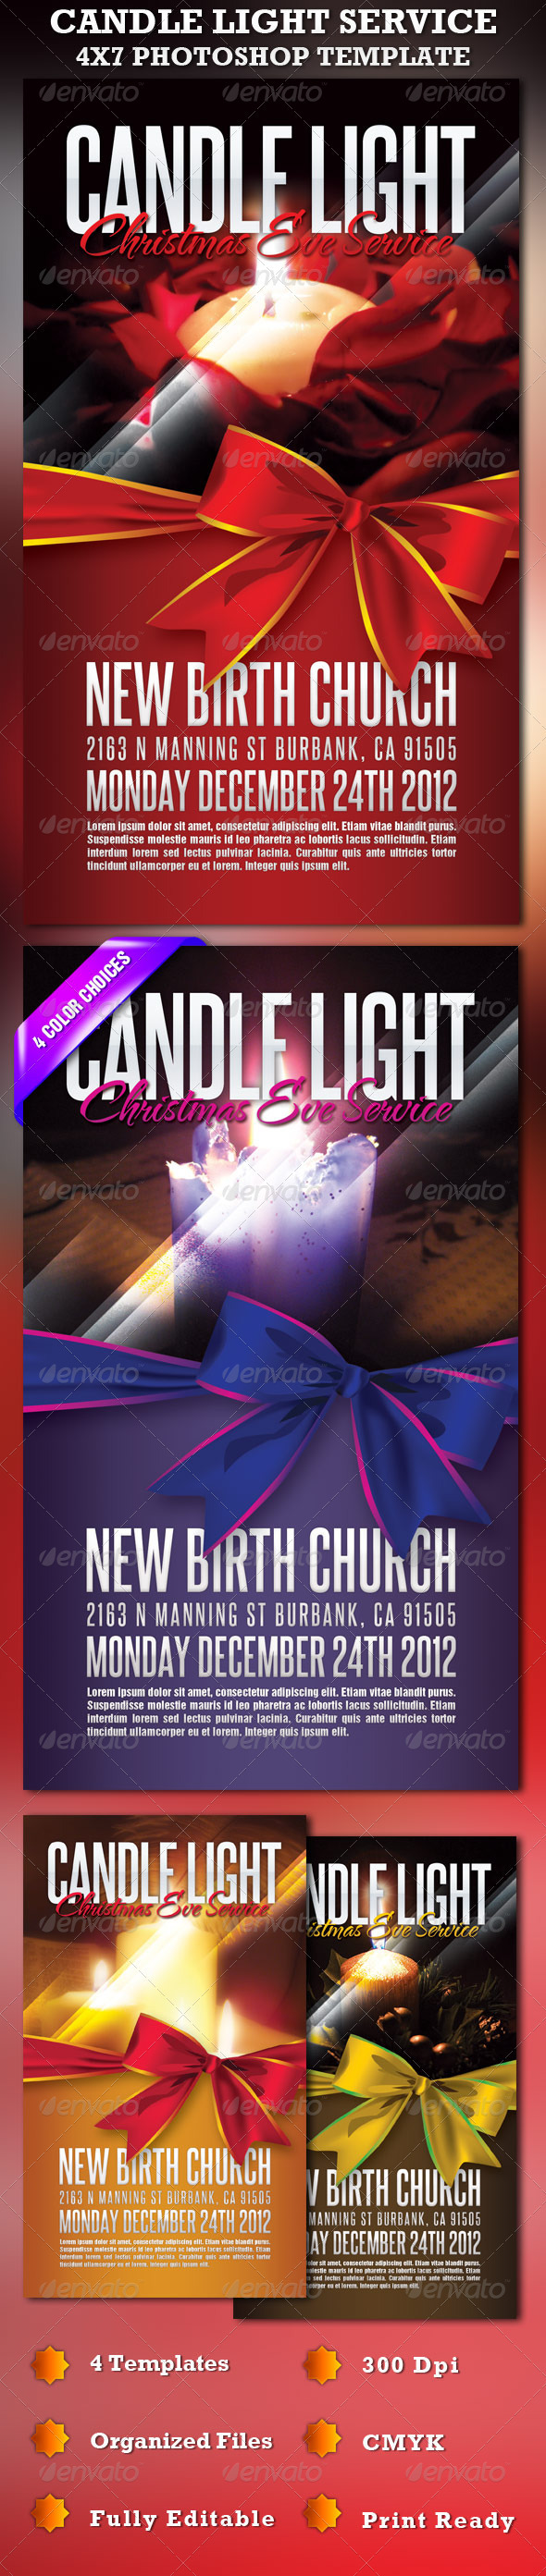 Candle Light Service 4X7 Photoshop Template - Church Flyers